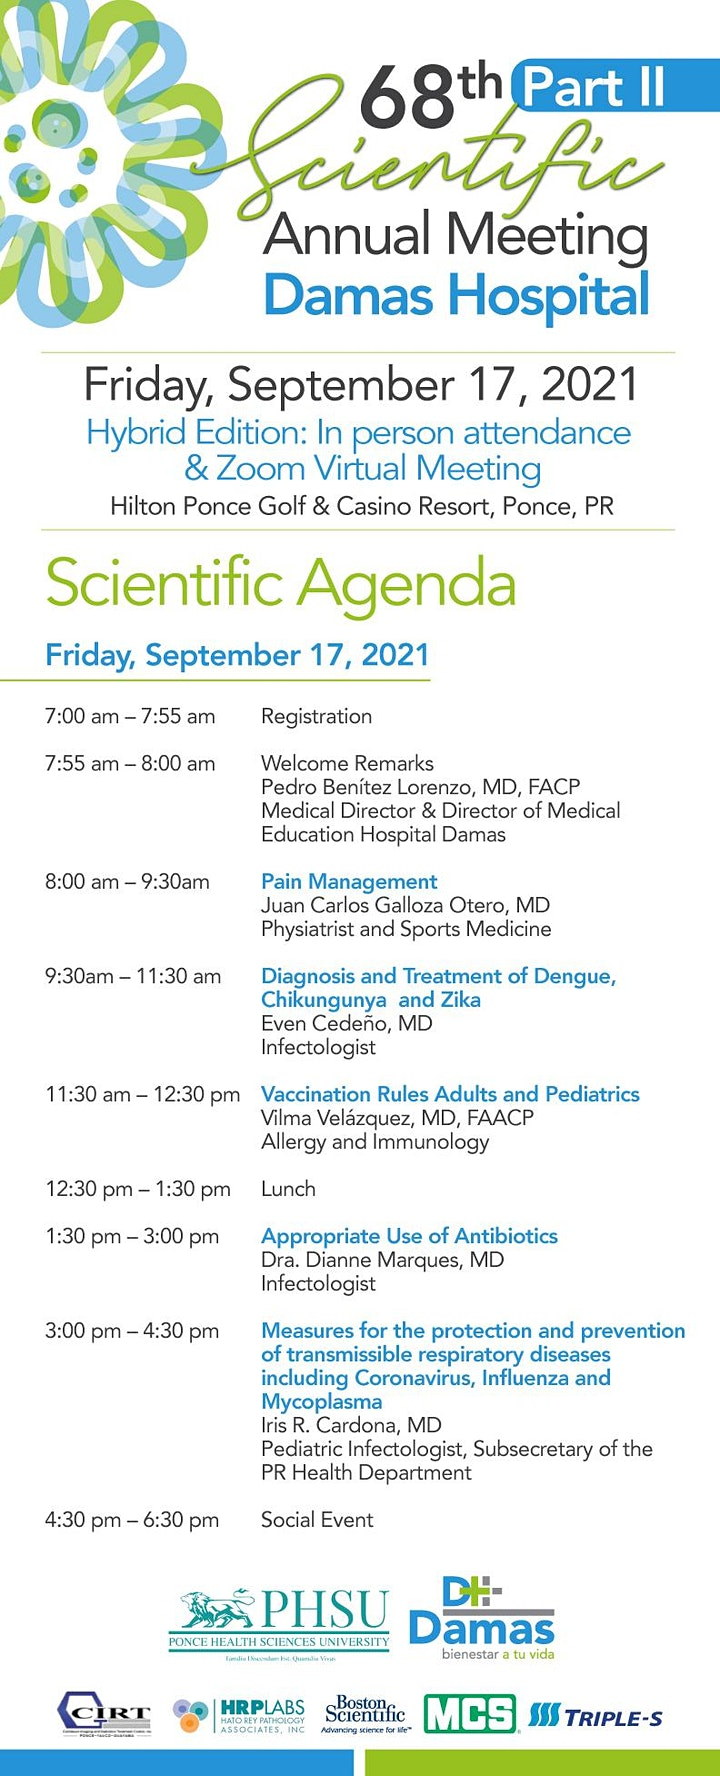 68th Scientific Annual Meeting Part II, Hybrid Edition 09.17.2021 image